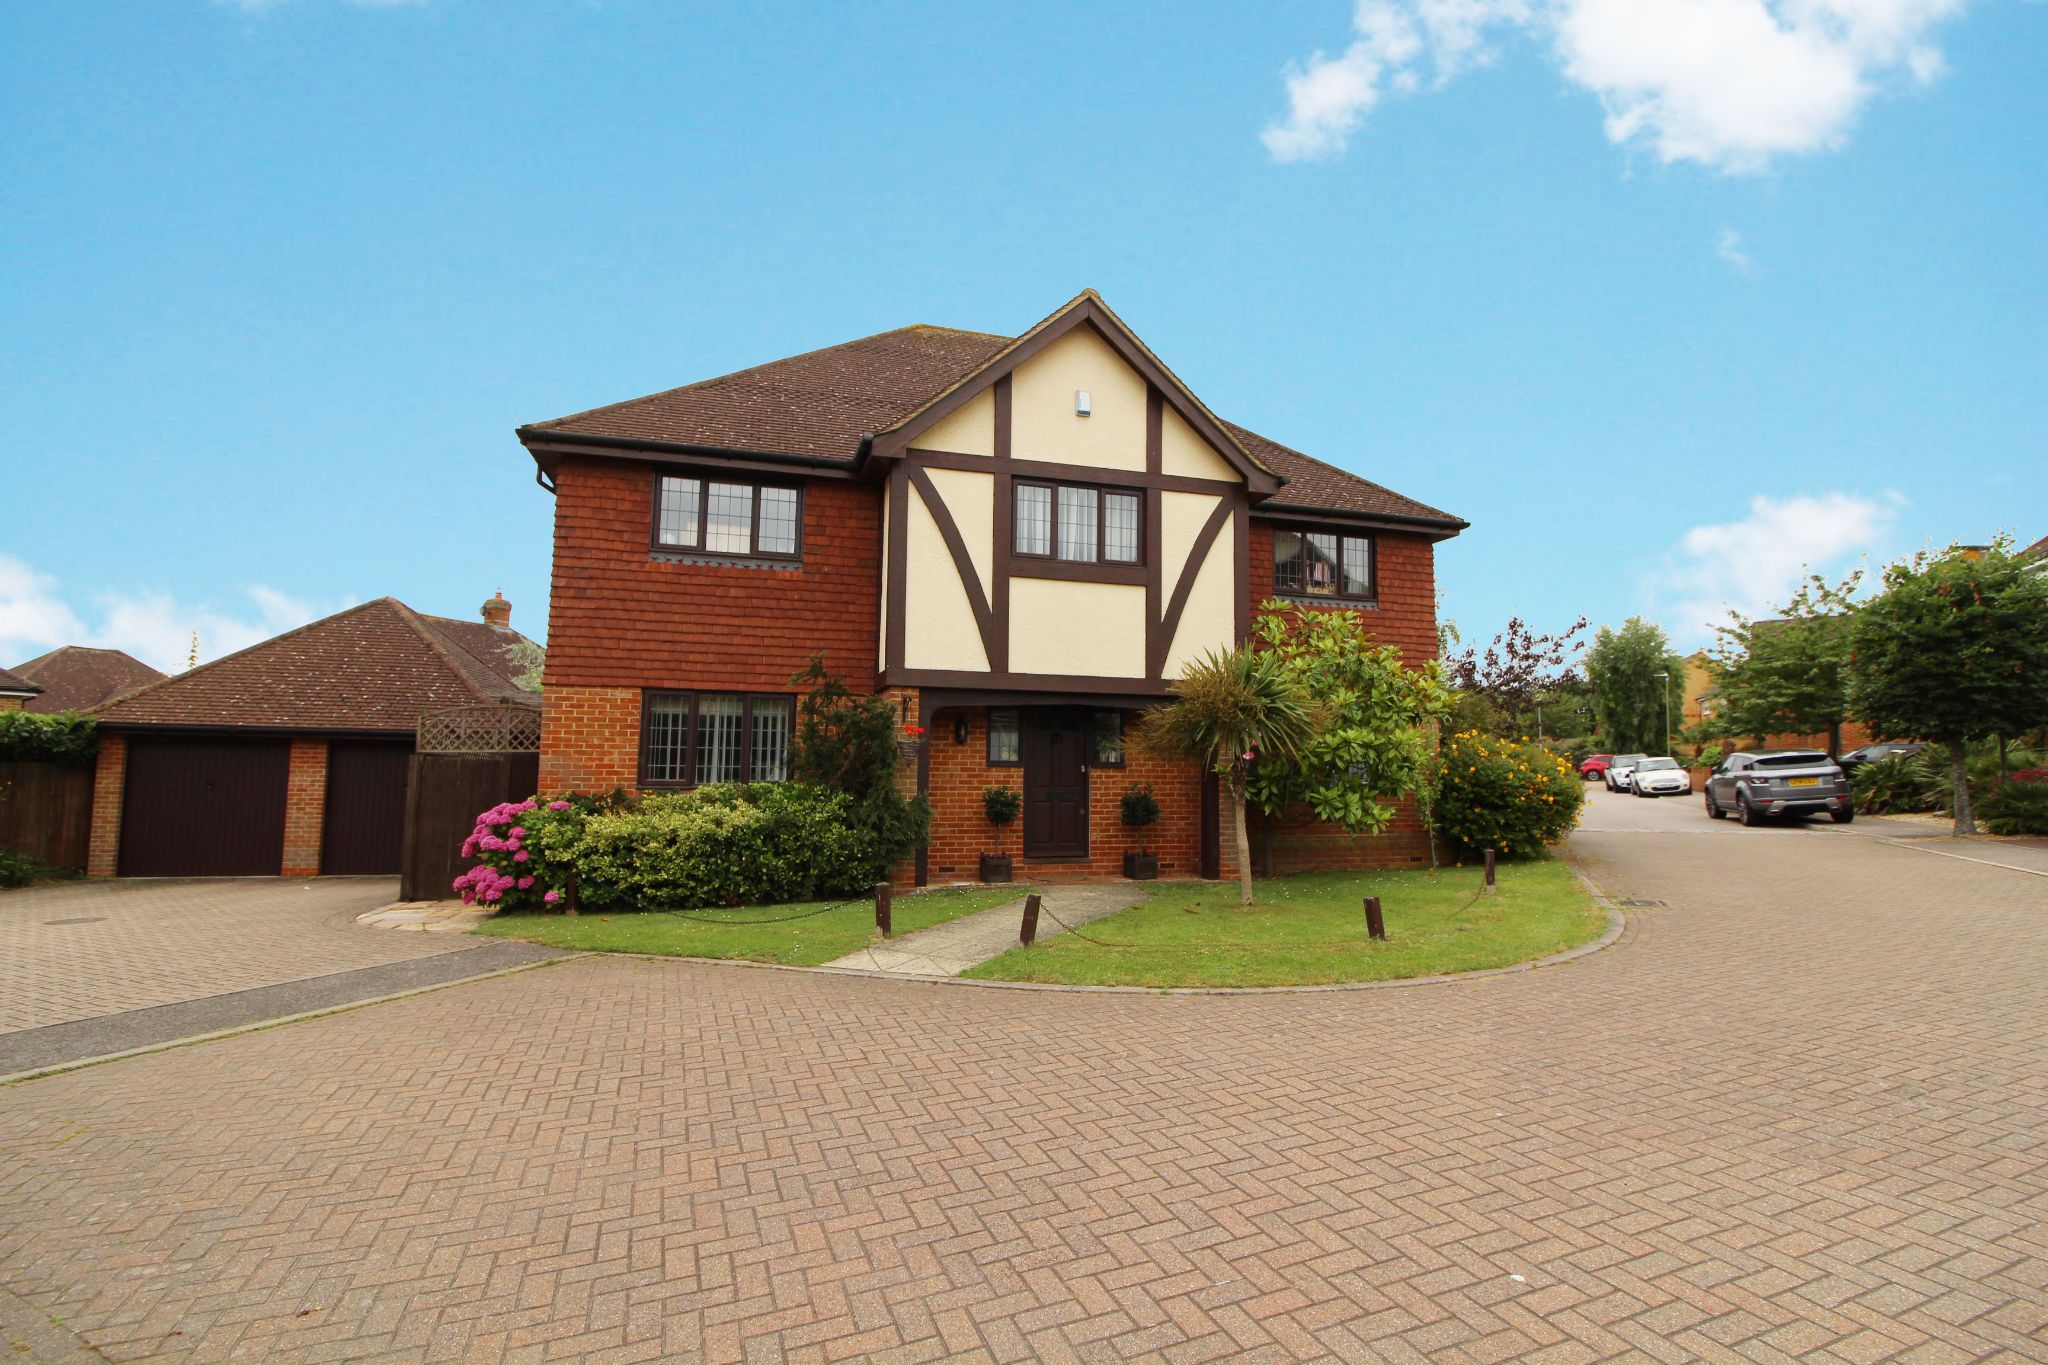 5 bedroom detached house For Sale in West Cheshunt - Photograph 10